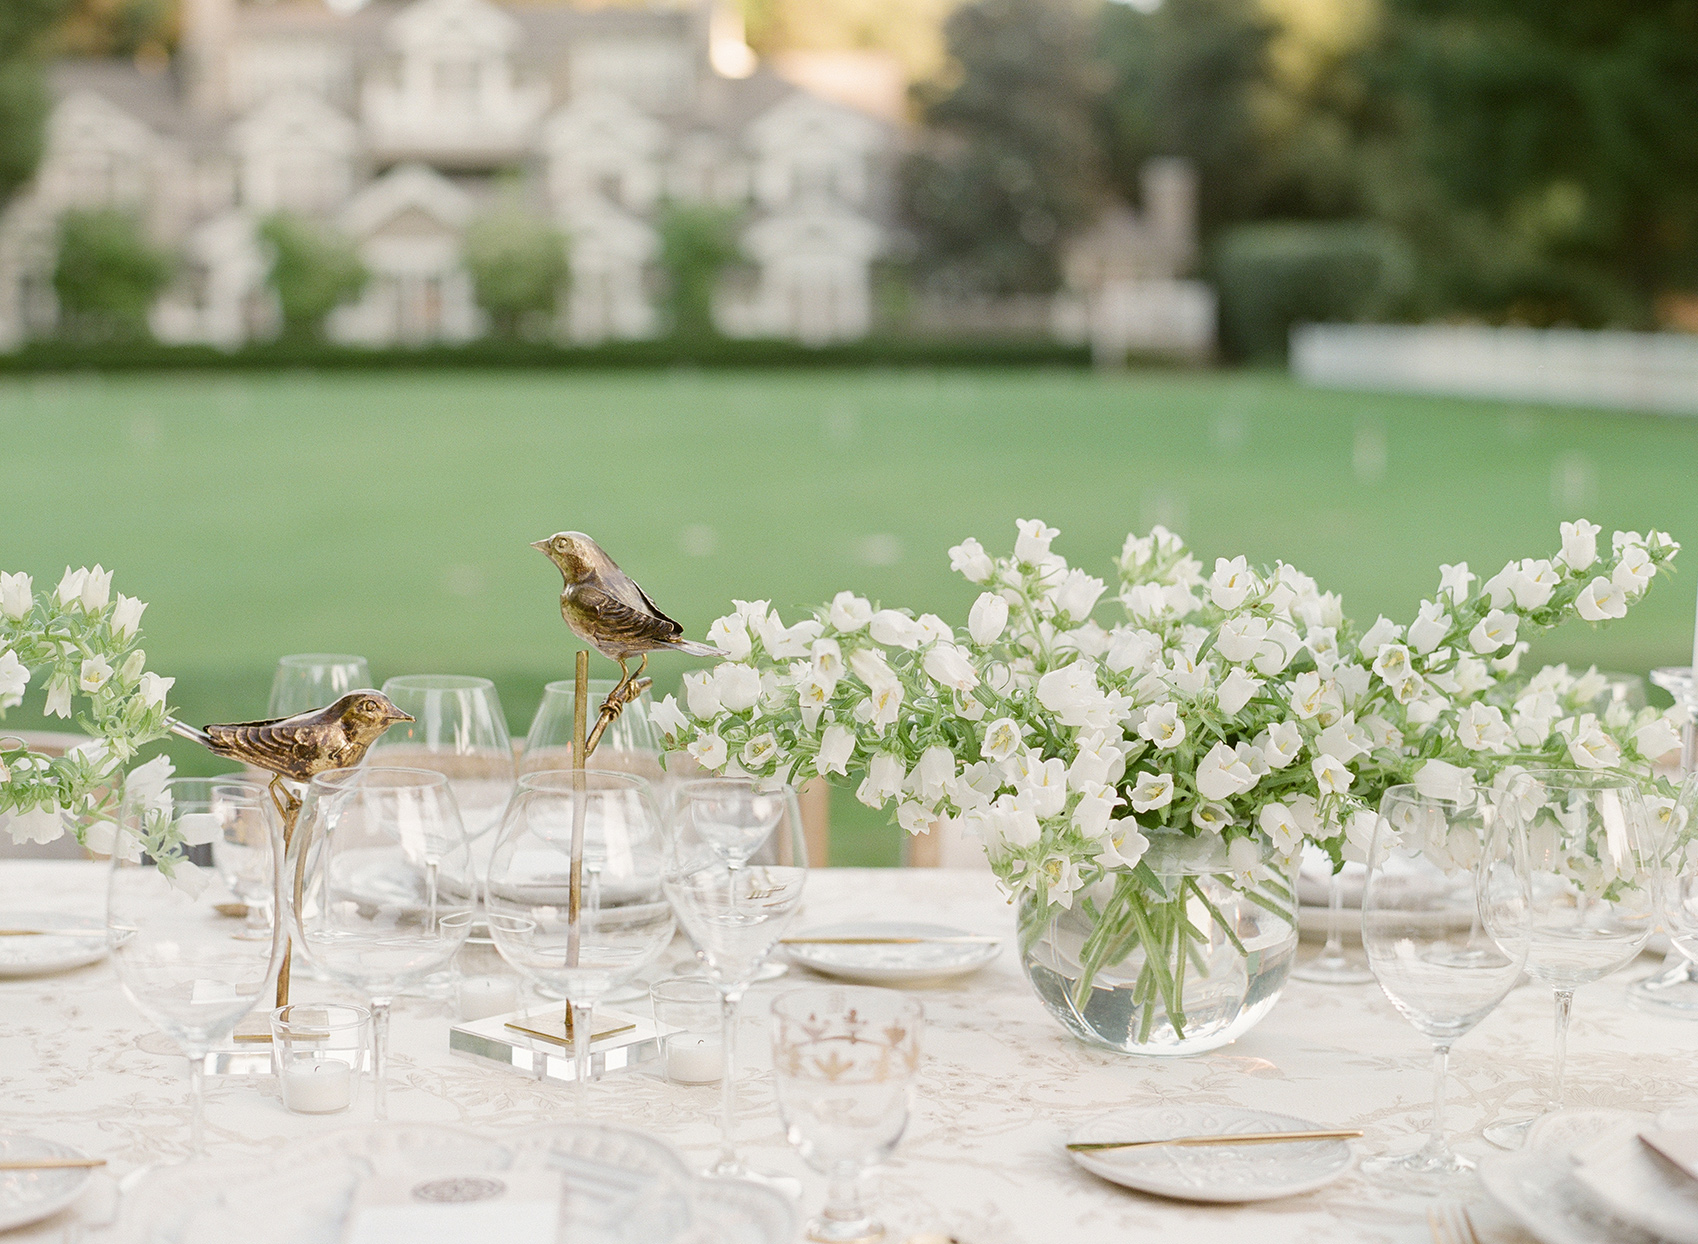 Wedding reception tables with low all-white canterbury bell centerpieces in clear bowl vases